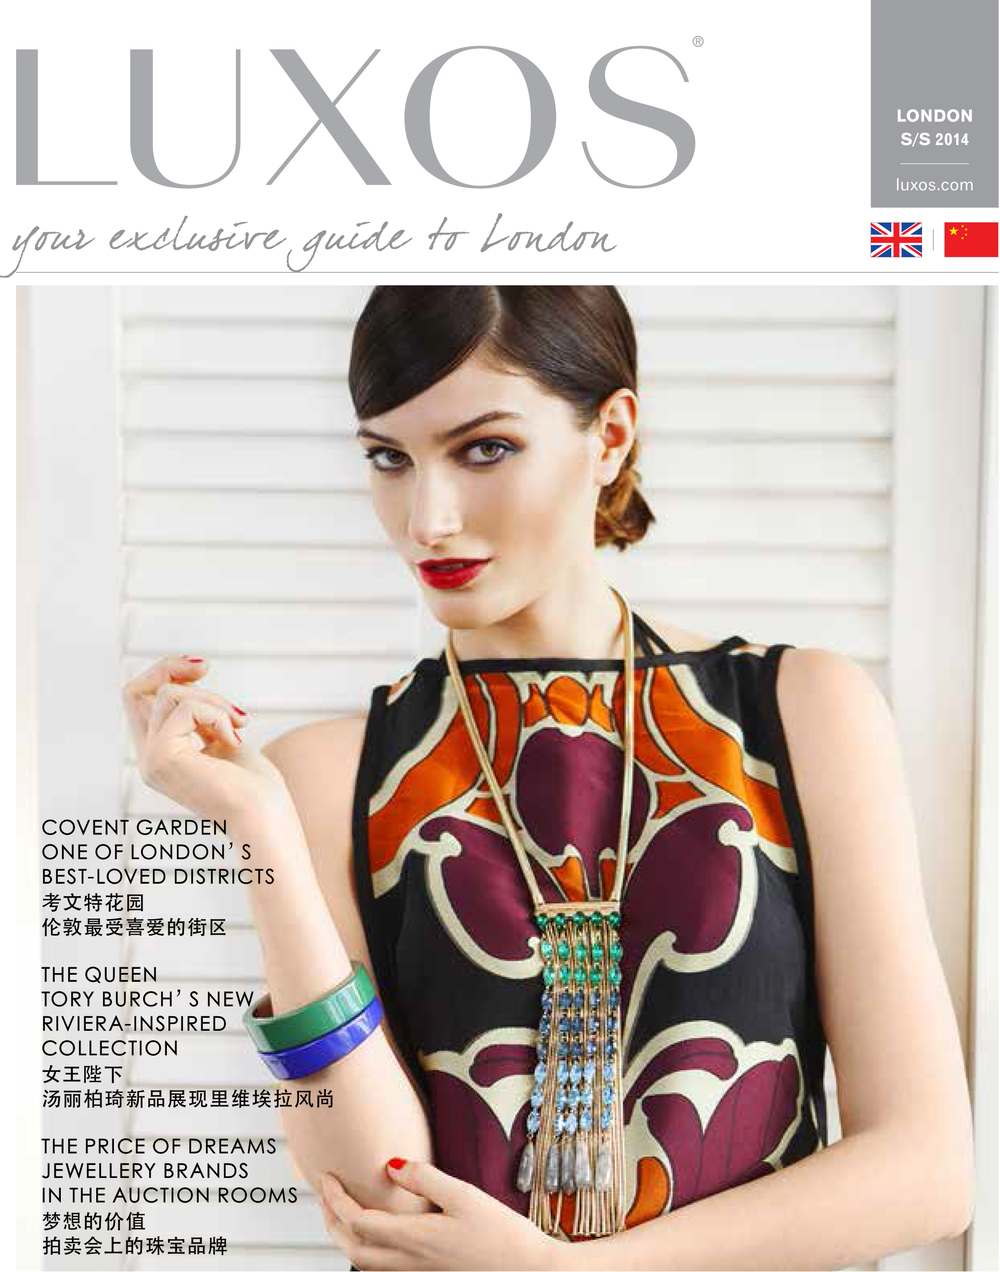 luxos_london_chinese_ss2014-1a.jpg